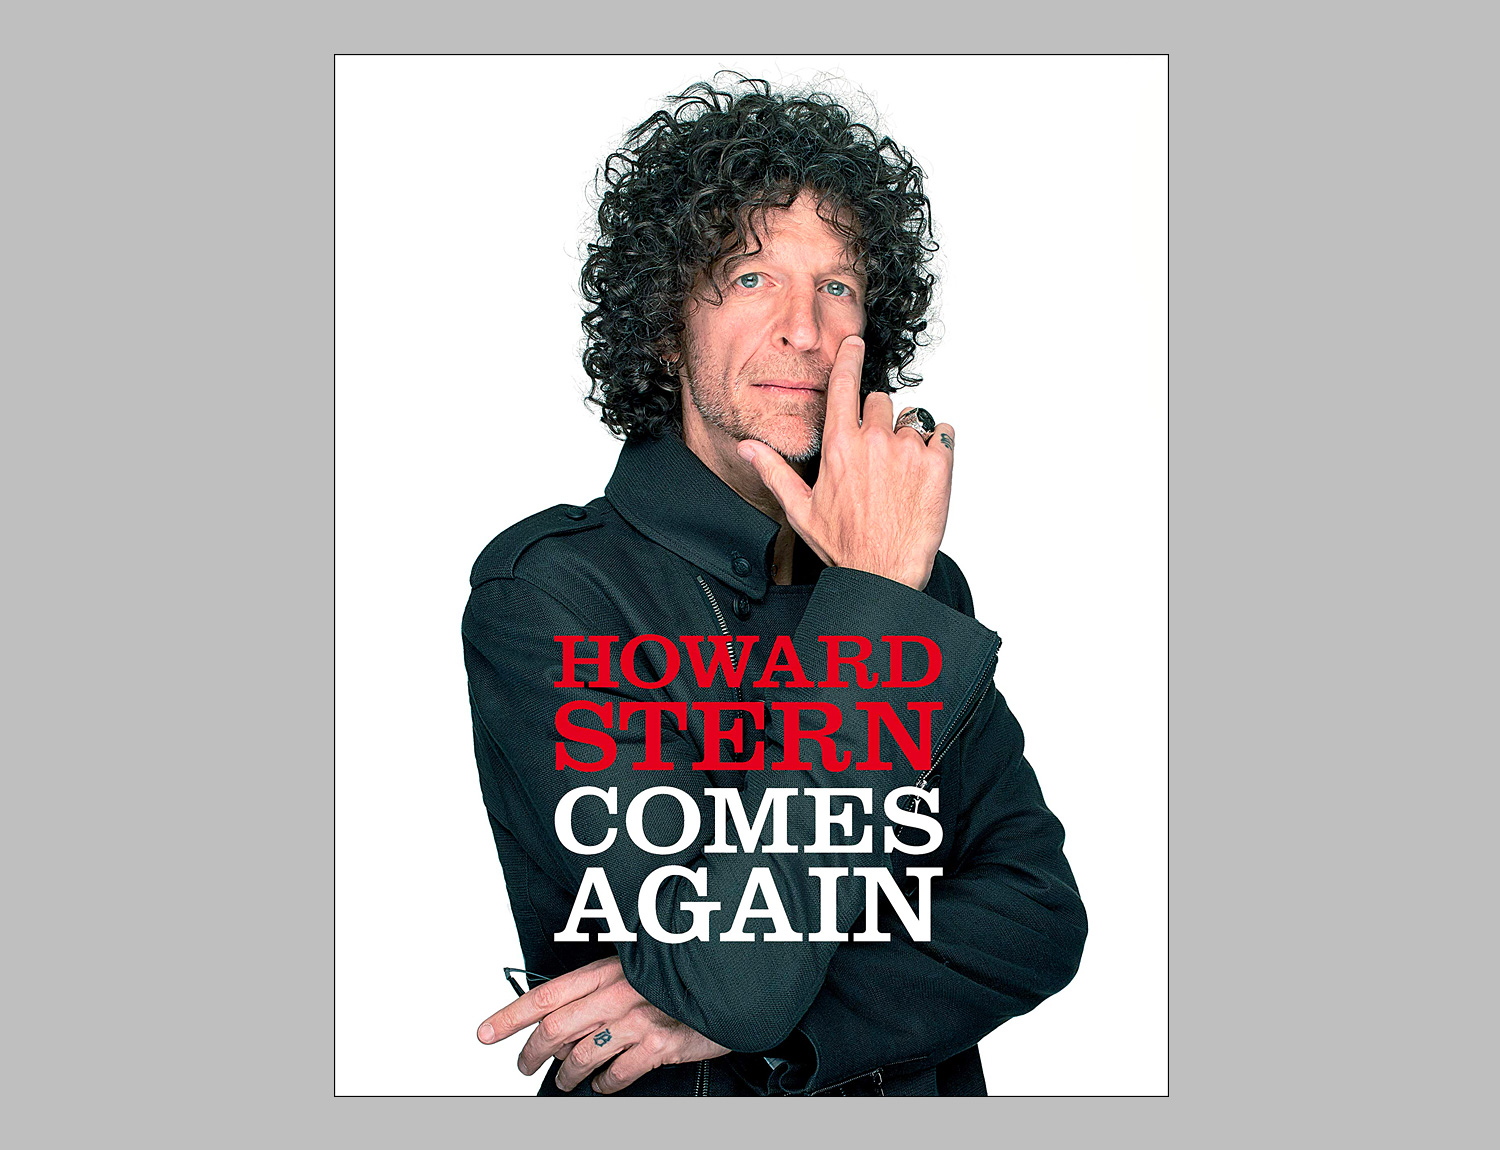 Howard Stern Comes Again at werd.com